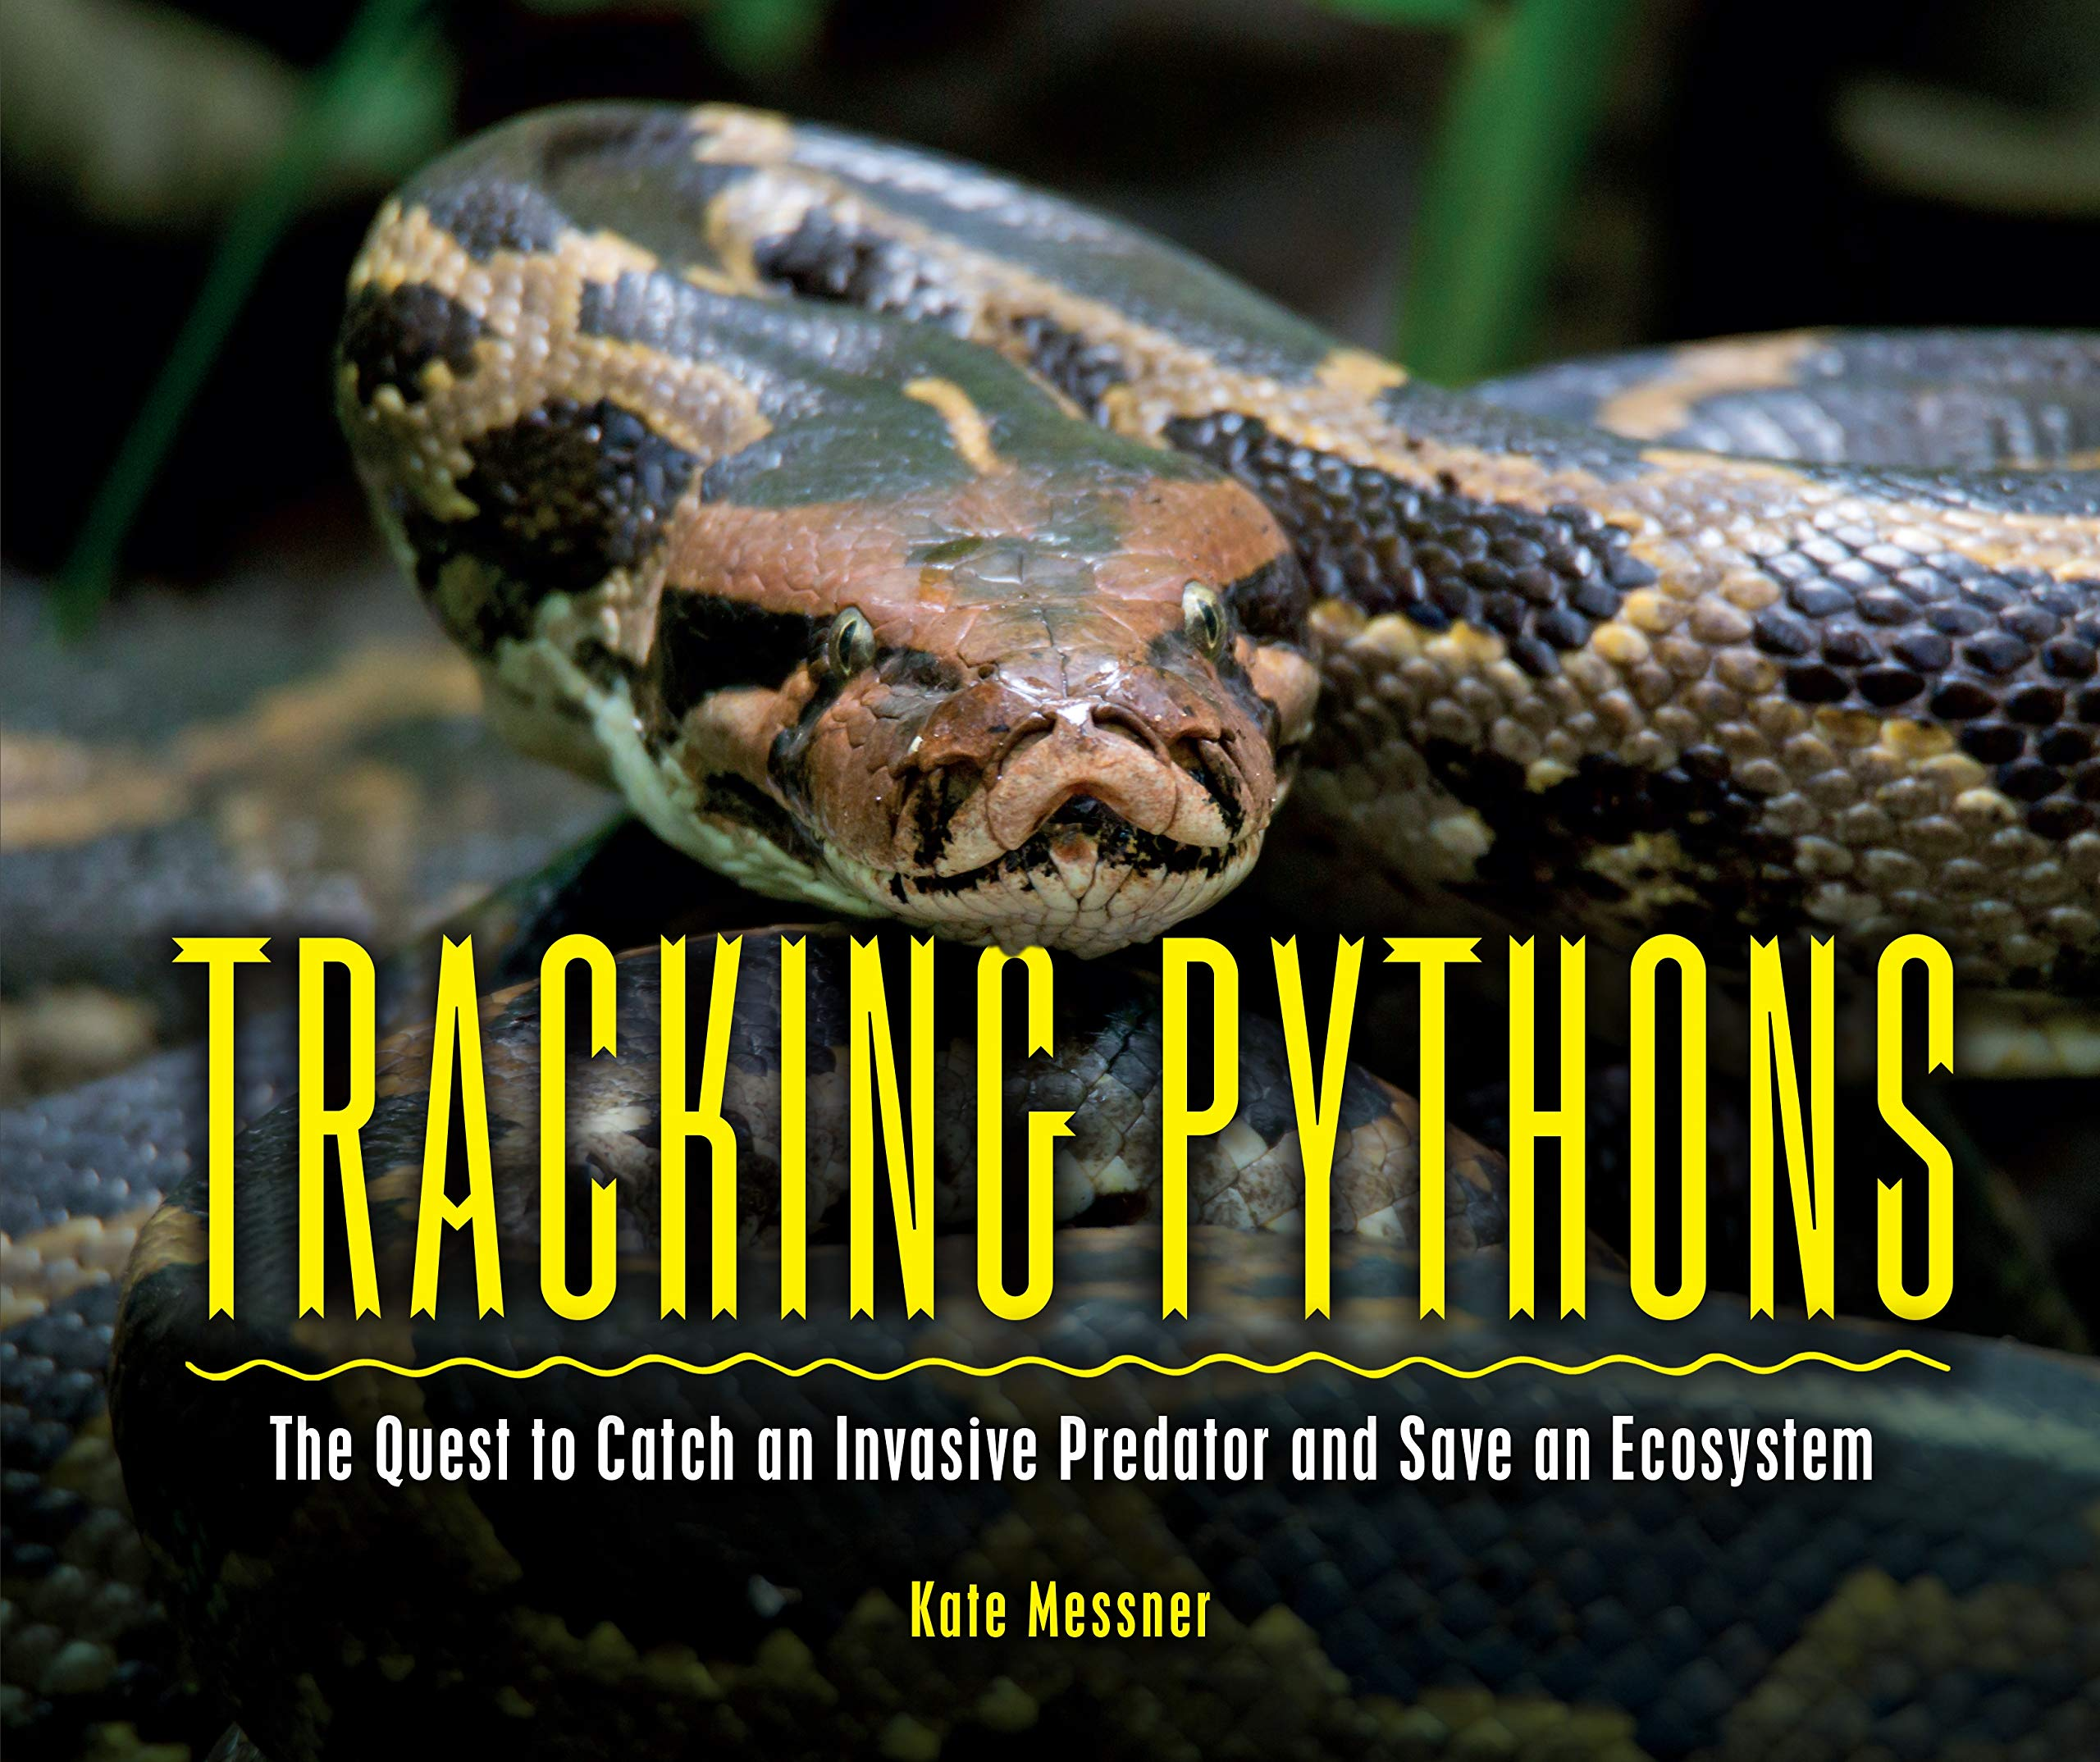 Image result for tracking pythons kate messner